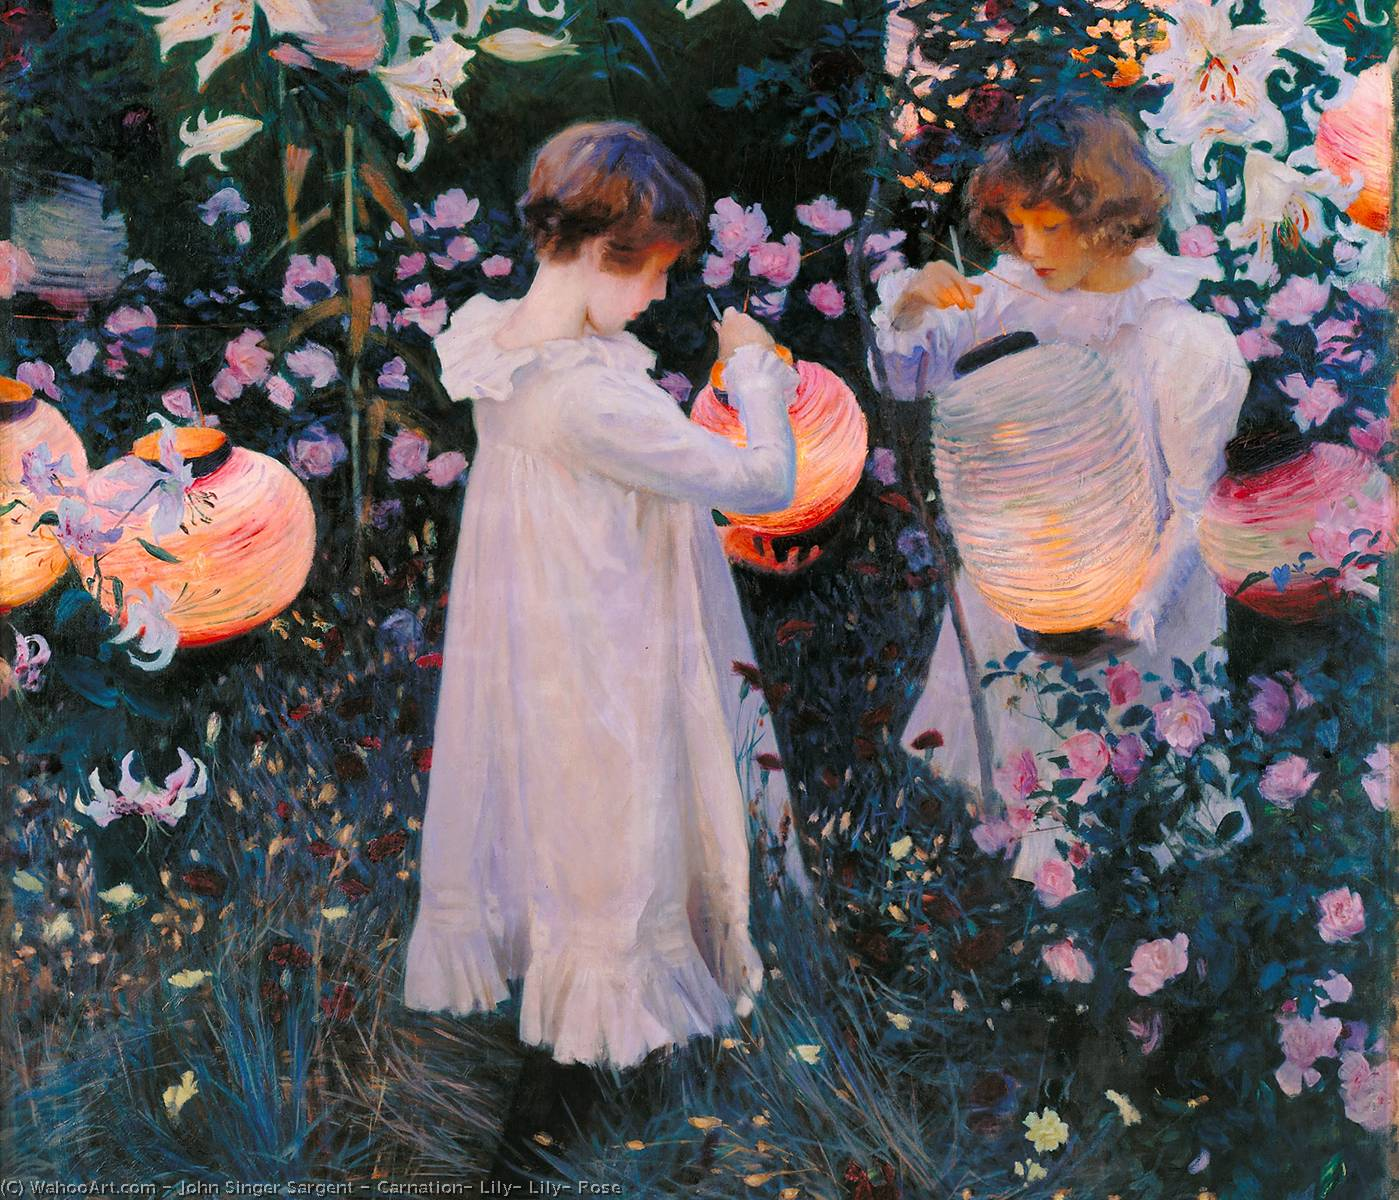 Carnation, Lily, Lily, Rose, Oil by John Singer Sargent (1856-1925, Italy)